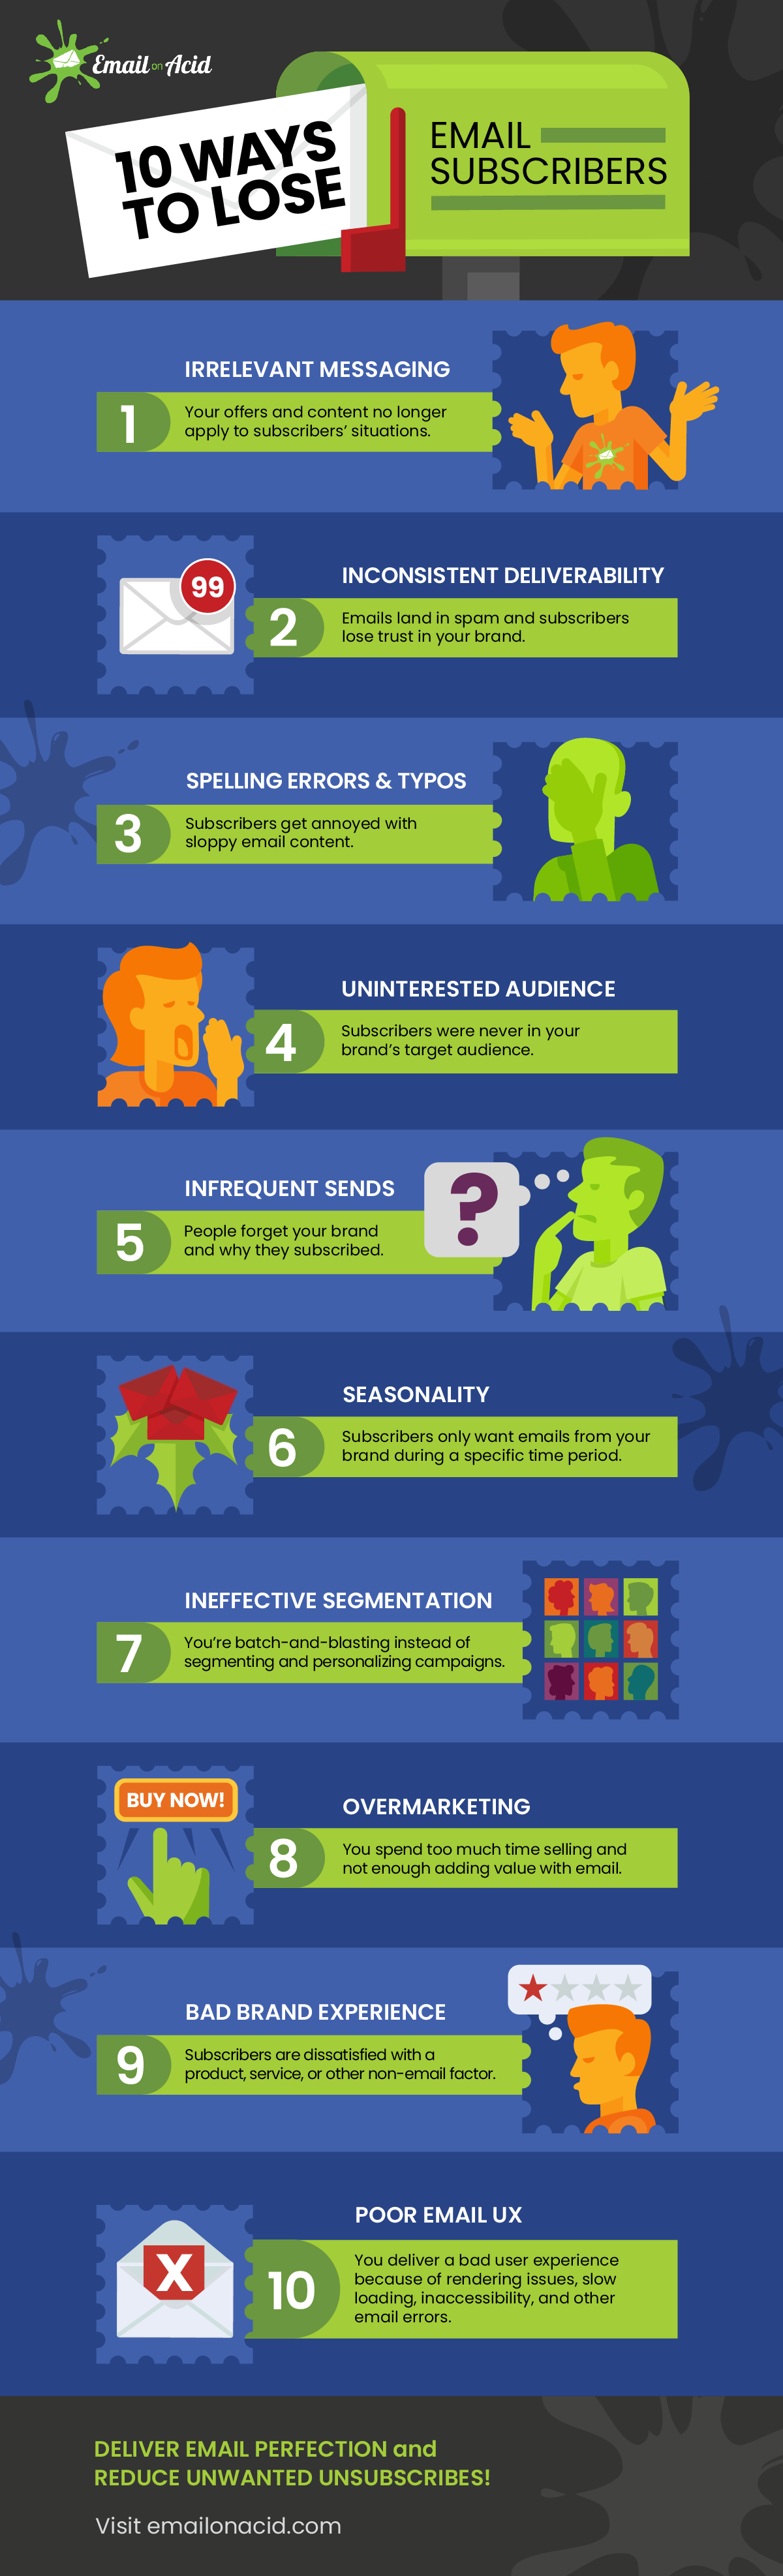 email unsubscribe infographic